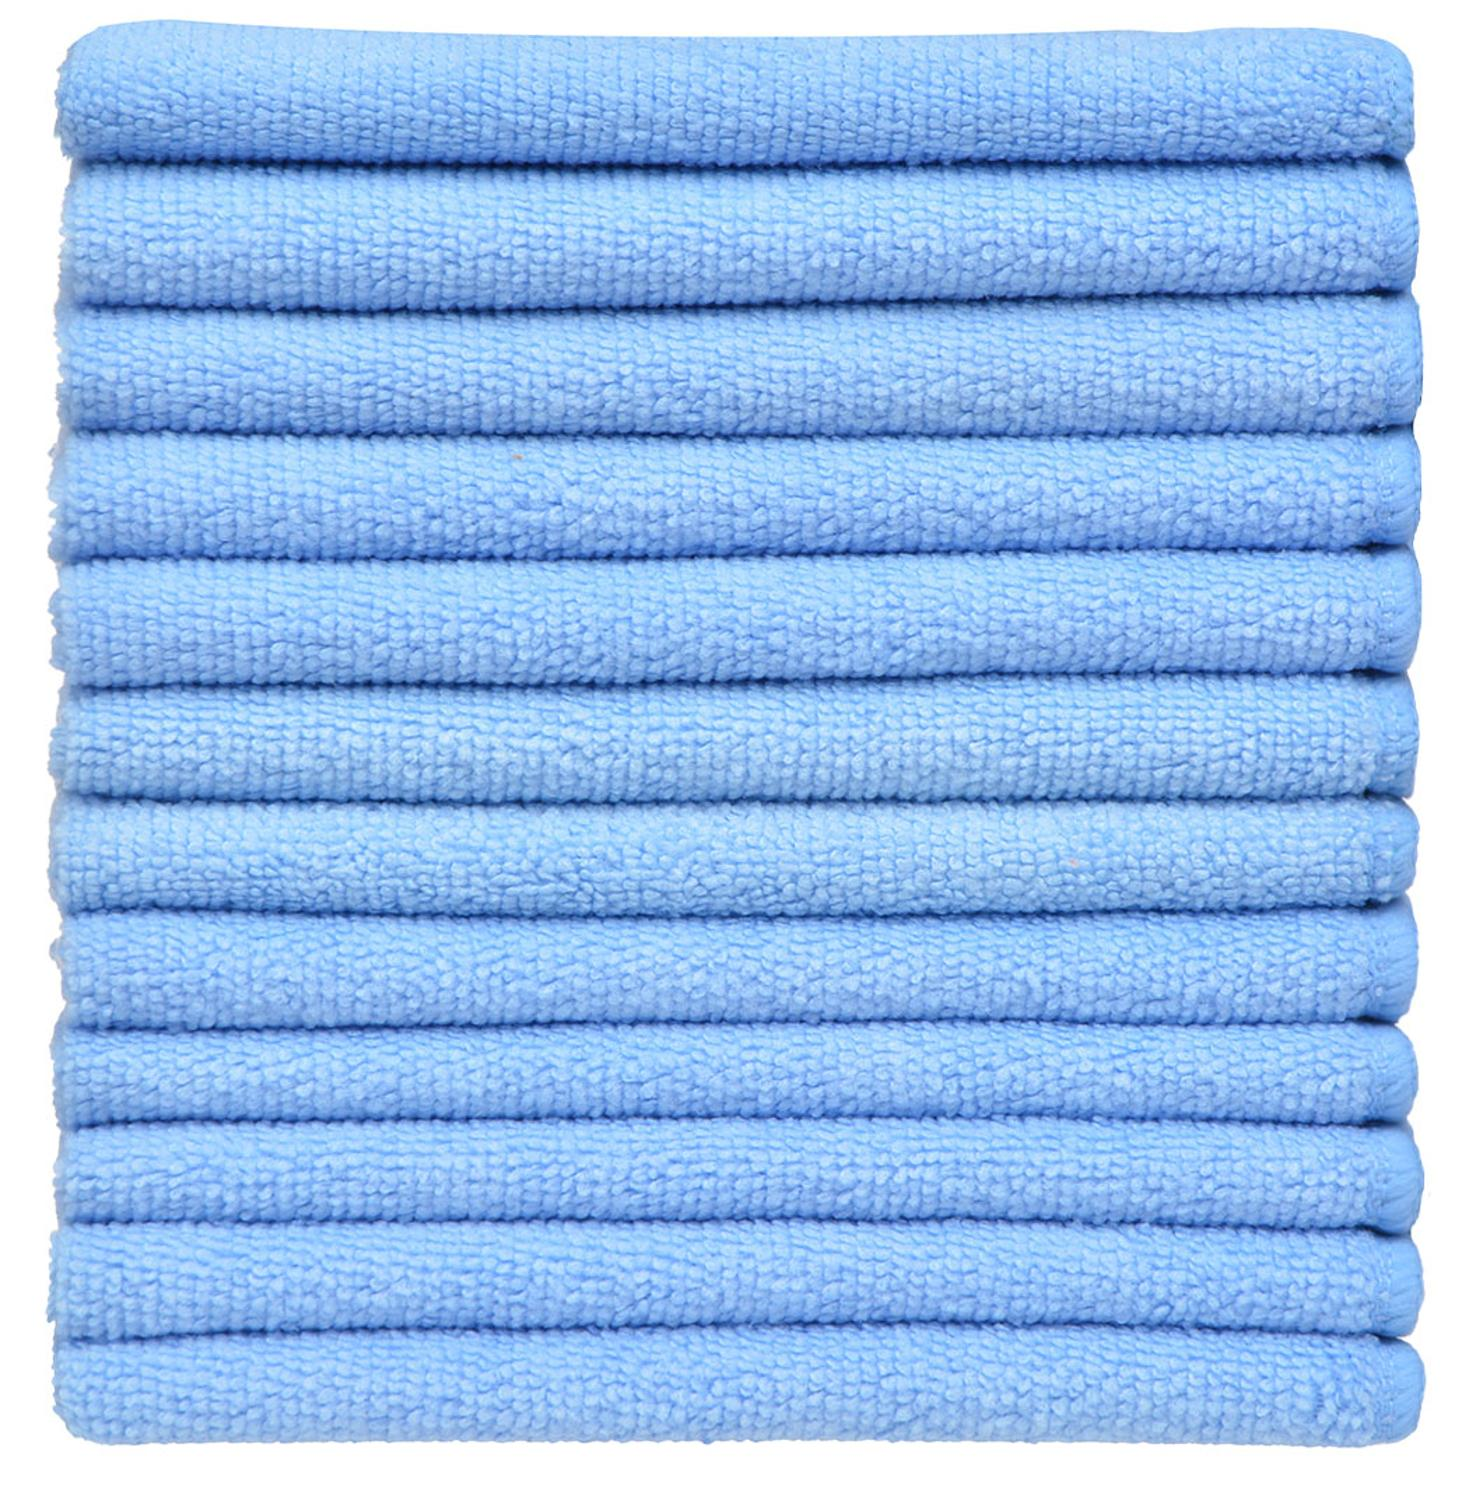 Super Absorbent Household Microfiber Dish Cloth Washing Dishcloths Kitchen Cleaning Rags Quick Dry 16inX16in 40X40cm 10 Pack